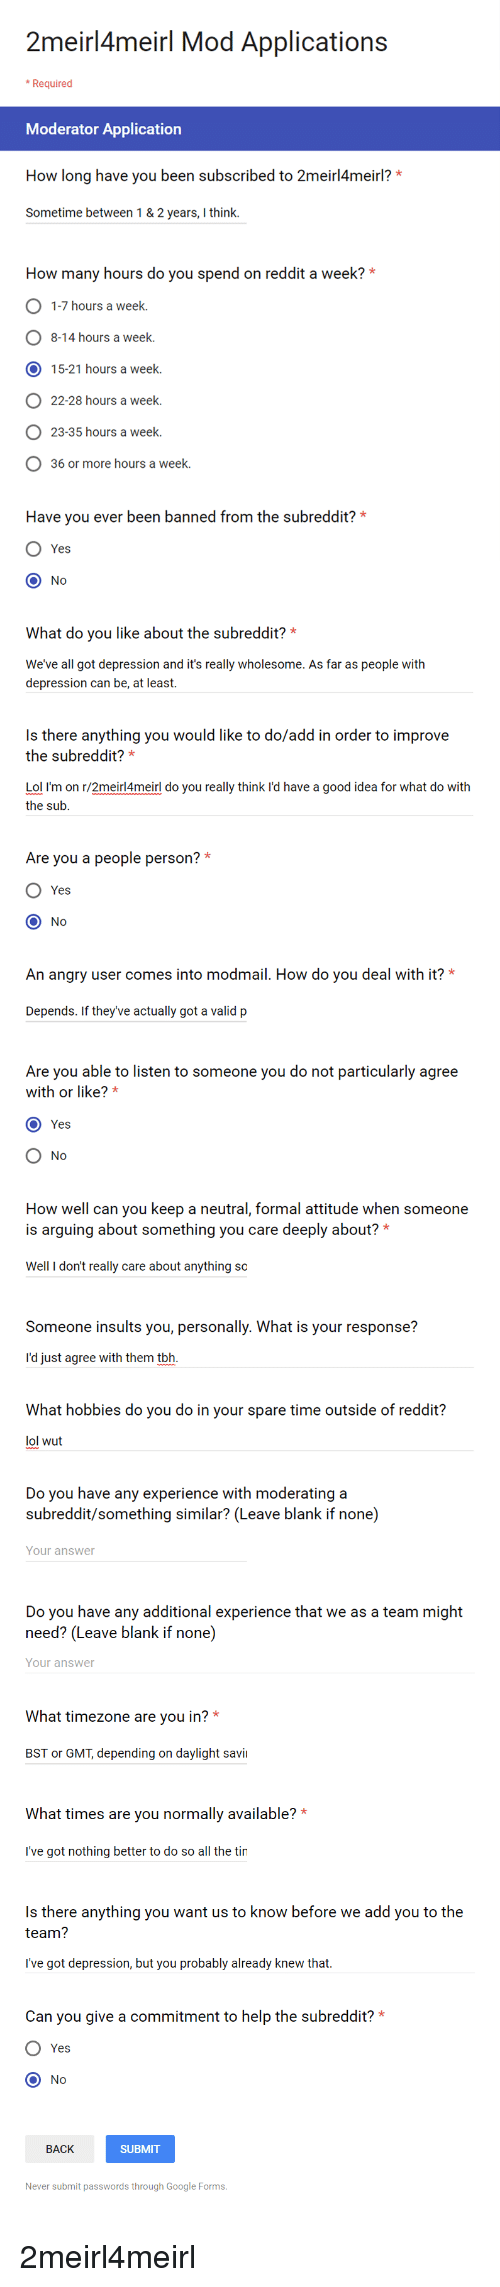 Google, Lol, and Reddit: 2m  eirl4meirl Mod Applications  * Required  Moderator Application  How long have you been subscribed to 2meirl4meirl?*  Sometime between 1&2 years, I think  How many hours do you spend on reddit a week?*  1-7 hours a week.  O 8-14 hours a week.  O 15-21 hours a week.  O 22-28 hours a week.  O 23-35 hours a week.  36 or more hours a week.  Have you ever been banned from the subreddit?*  O Yes  O No  What do you like about the subreddit?*  We've all got depression and it's really wholesome. As far as people with  depression can be, at least.  Is there anything you would like to do/add in order to improvee  the subreddit?*  Lol I'm on r/2meirl4meirl do you really think I'd have a good idea for what do with  the sub  Are you a people person?  Yes  No  An angry user comes into modmail. How do you deal with it? *  Depends. If they've actually got a valid p  Are you able to listen to someone you do not particularly agree  with or like?*  Yes  No  How well can you keep a neutral, formal attitude when someone  is arguing about something you care deeply about?  Well I don't really care about anything so  Someone insults you, personally. What is your response?  I'd just agree with them tbh.  What hobbies do you do in your spare time outside of reddit?  lol wut  Do you have any experience with moderating a  subreddit/something similar? (Leave blank if none)  Your answer  Do you have any additional experience that we as a team might  need? (Leave blank if none)  Your answer  What timezone are you in?*  BST or GMT, depending on daylight savi  What times are you normally available?  I've got nothing better to do so all the tin  Is there anything you want us to know before we add you to the  team?  I've got depression, but you probably already knew that.  Can you give a commitment to help the subreddit?  Yes  O No  BACK  SUBMIT  Never submit passwords through Google Forms. 2meirl4meirl